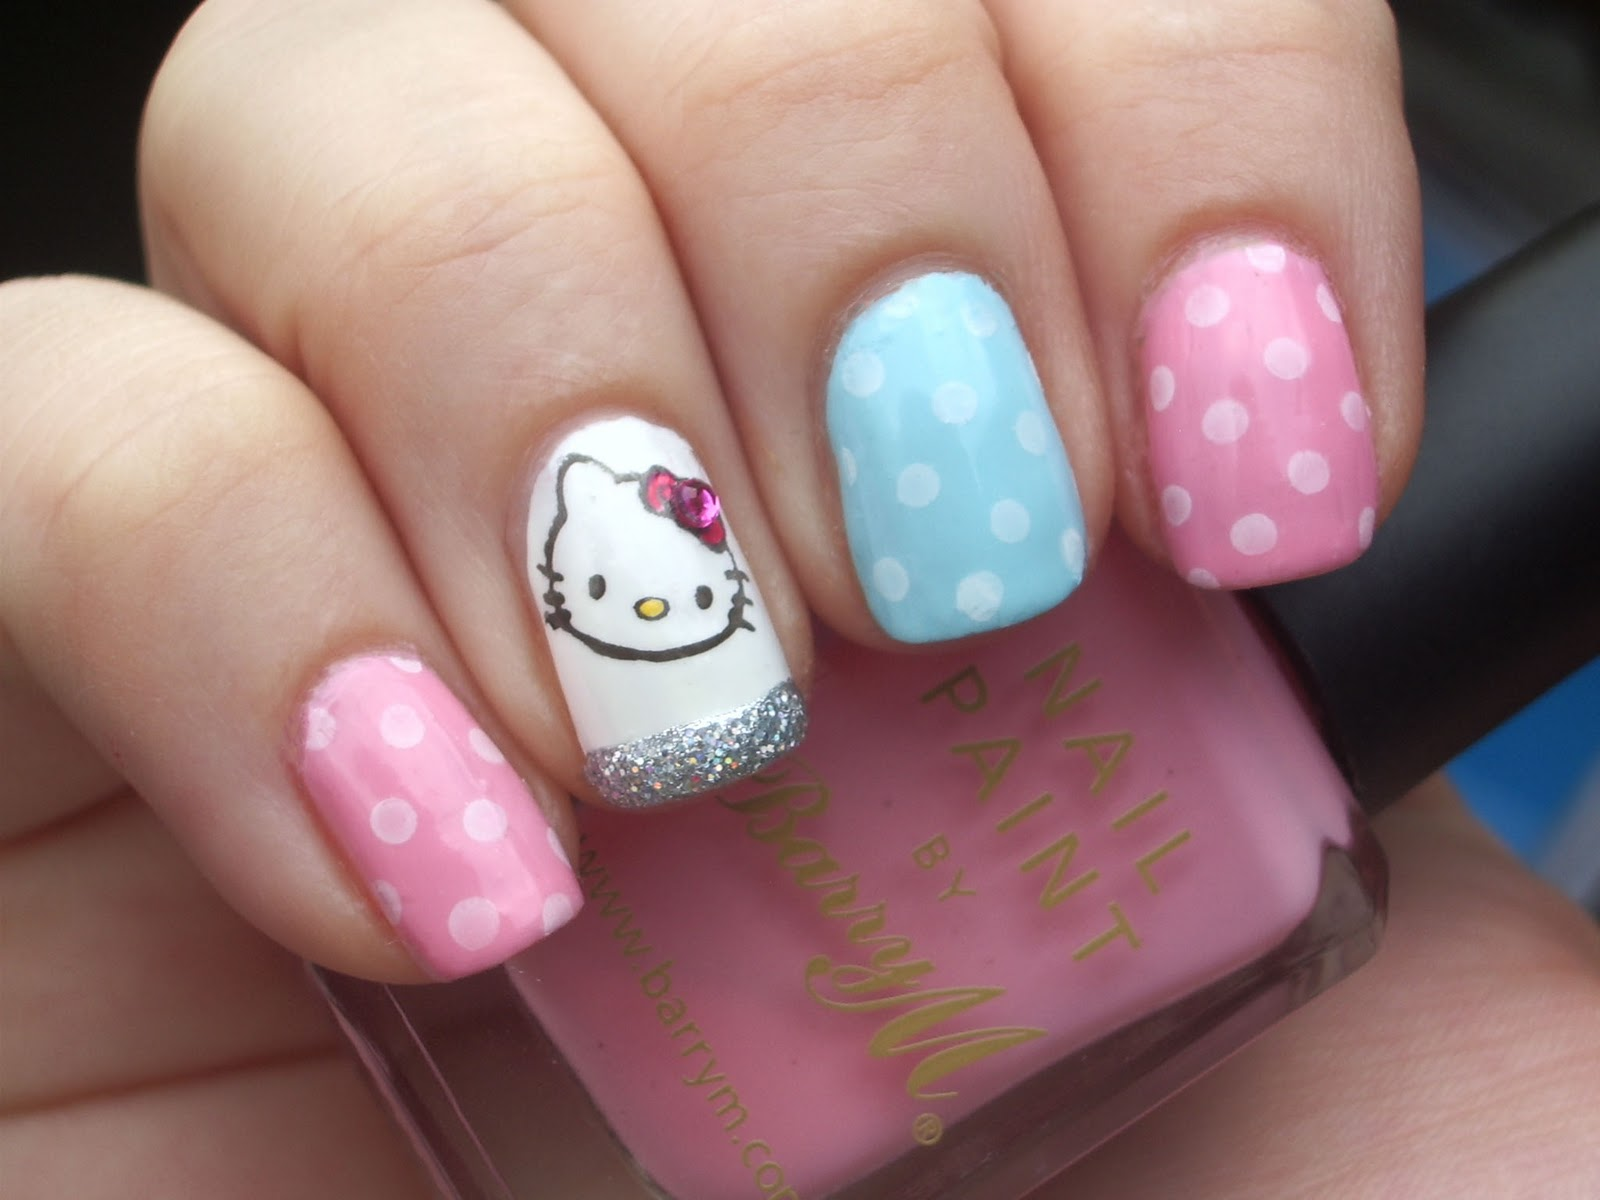 Pictures of hello kitty nail designs anna charlotta the appealing pictures of hello kitty nail designs images prinsesfo Images